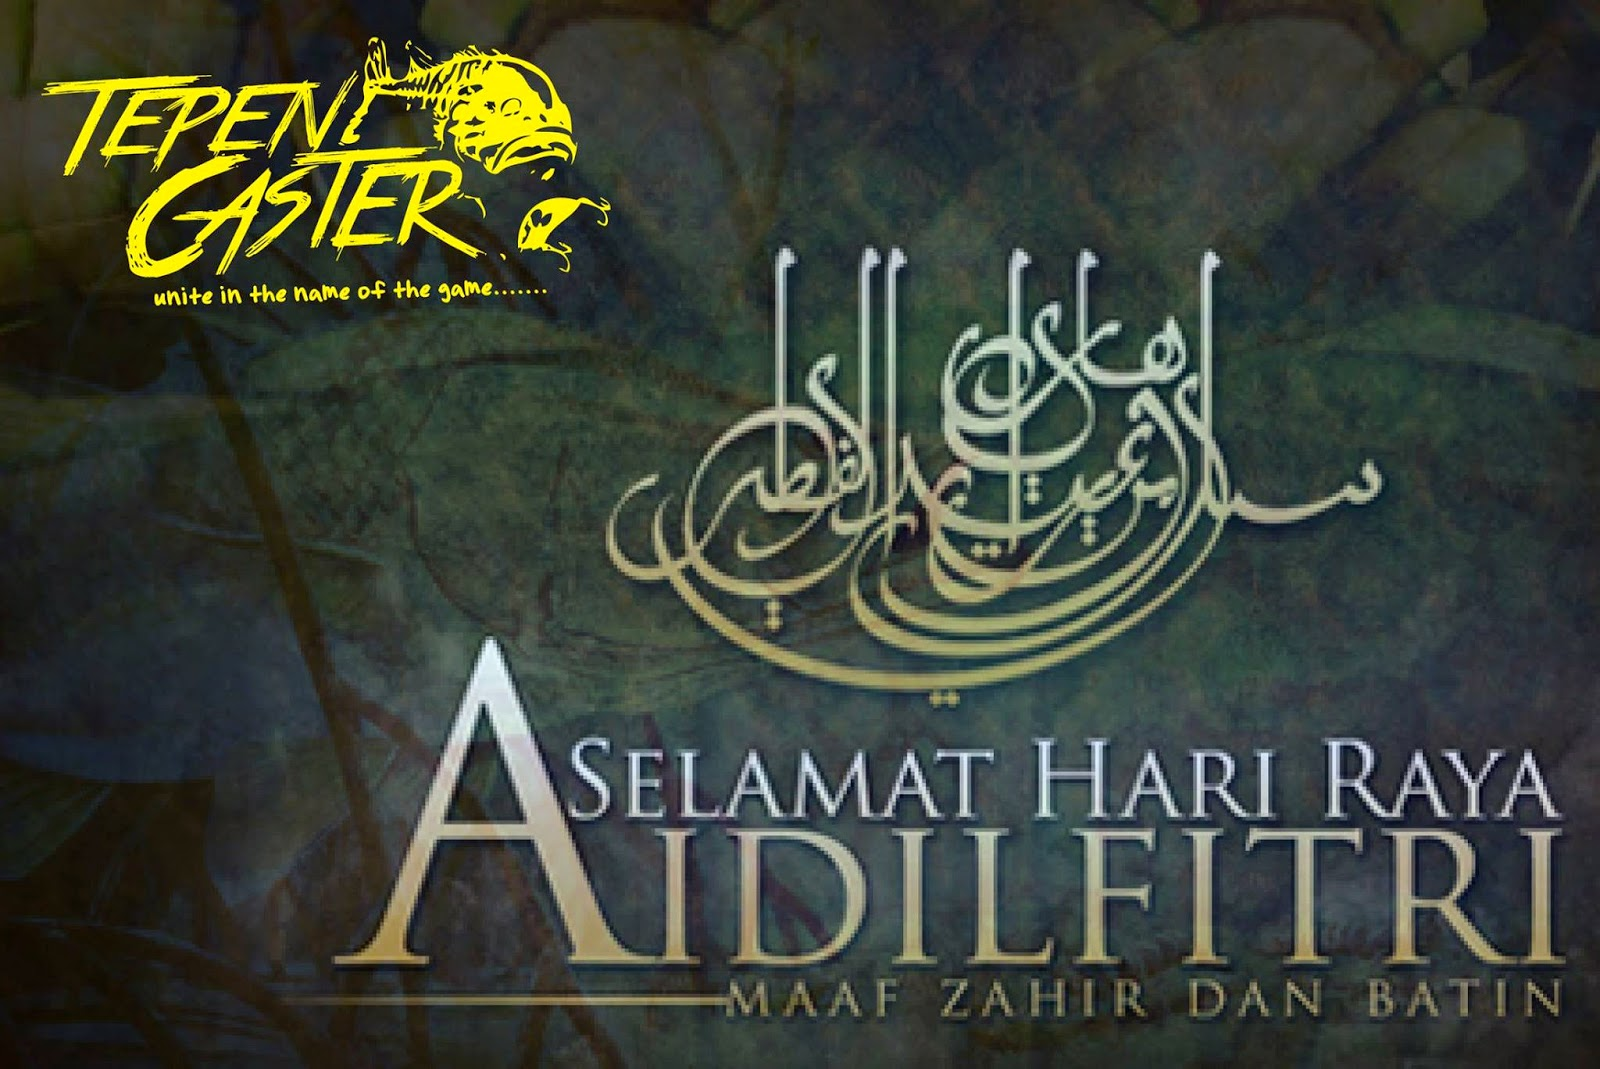 Salam Aidil Fitri Tepen Caster